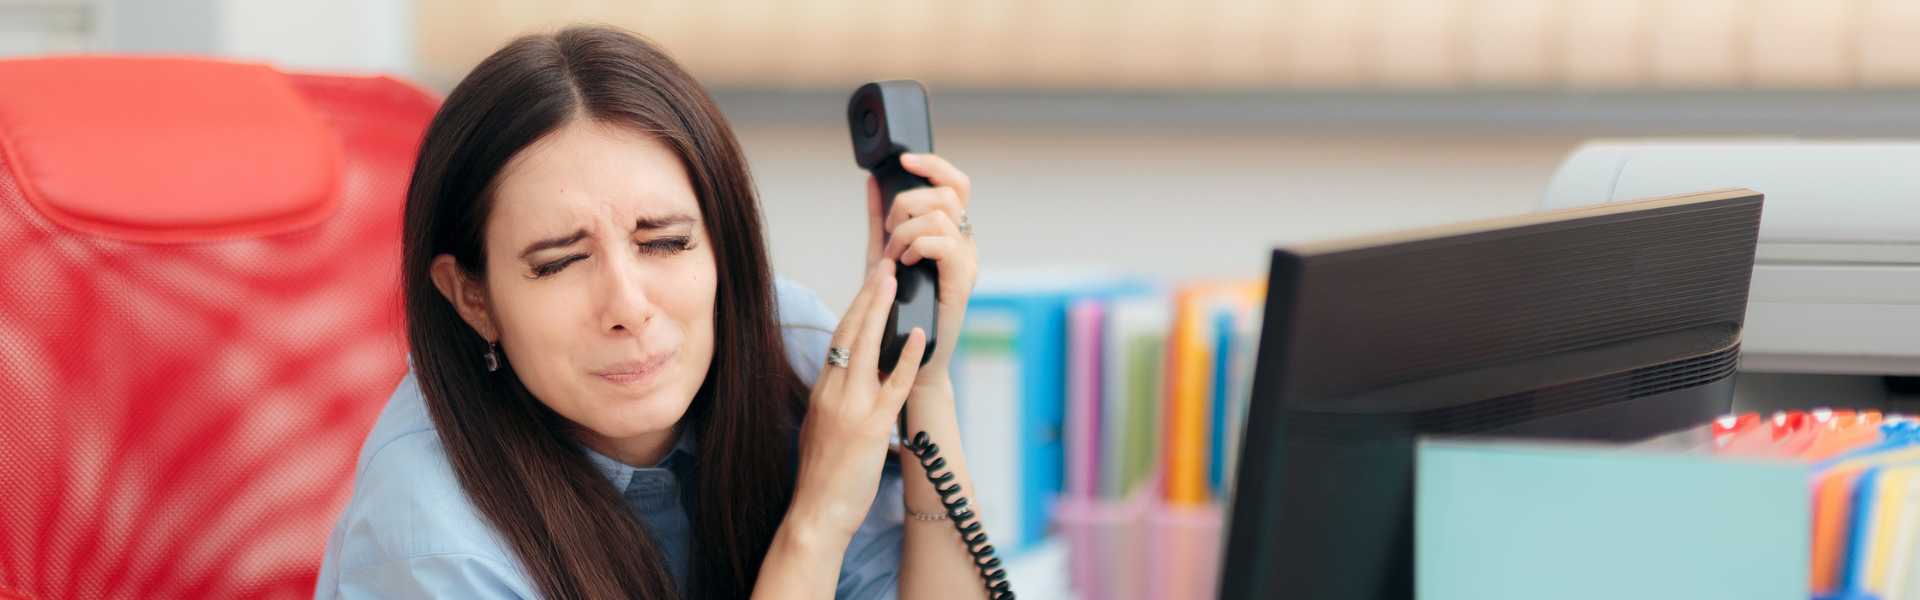 5 Questions To Ask if You Think Your Company Has Communication Issues